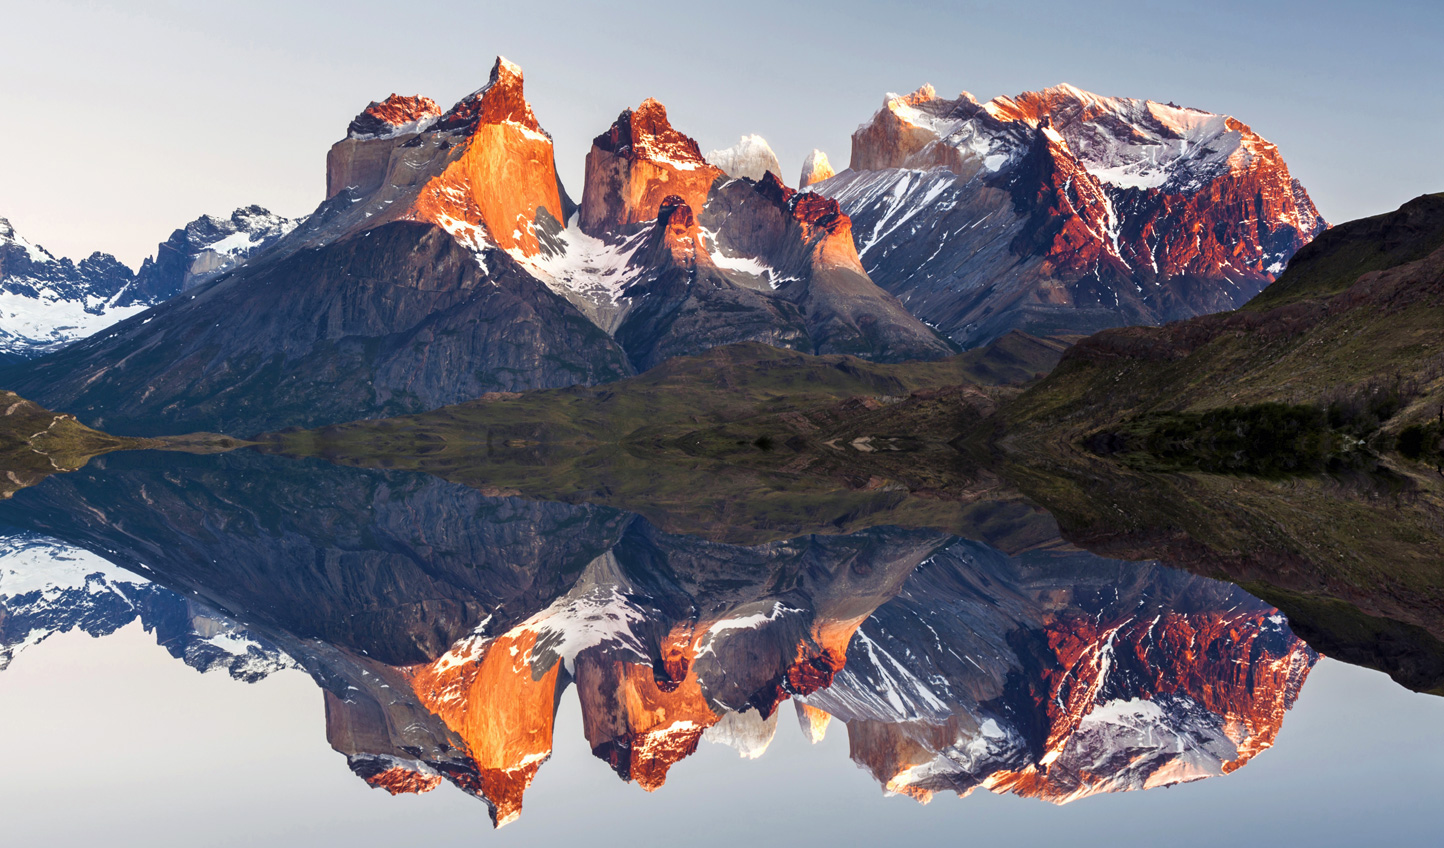 Capture the striking sunsets of Torres del Paine